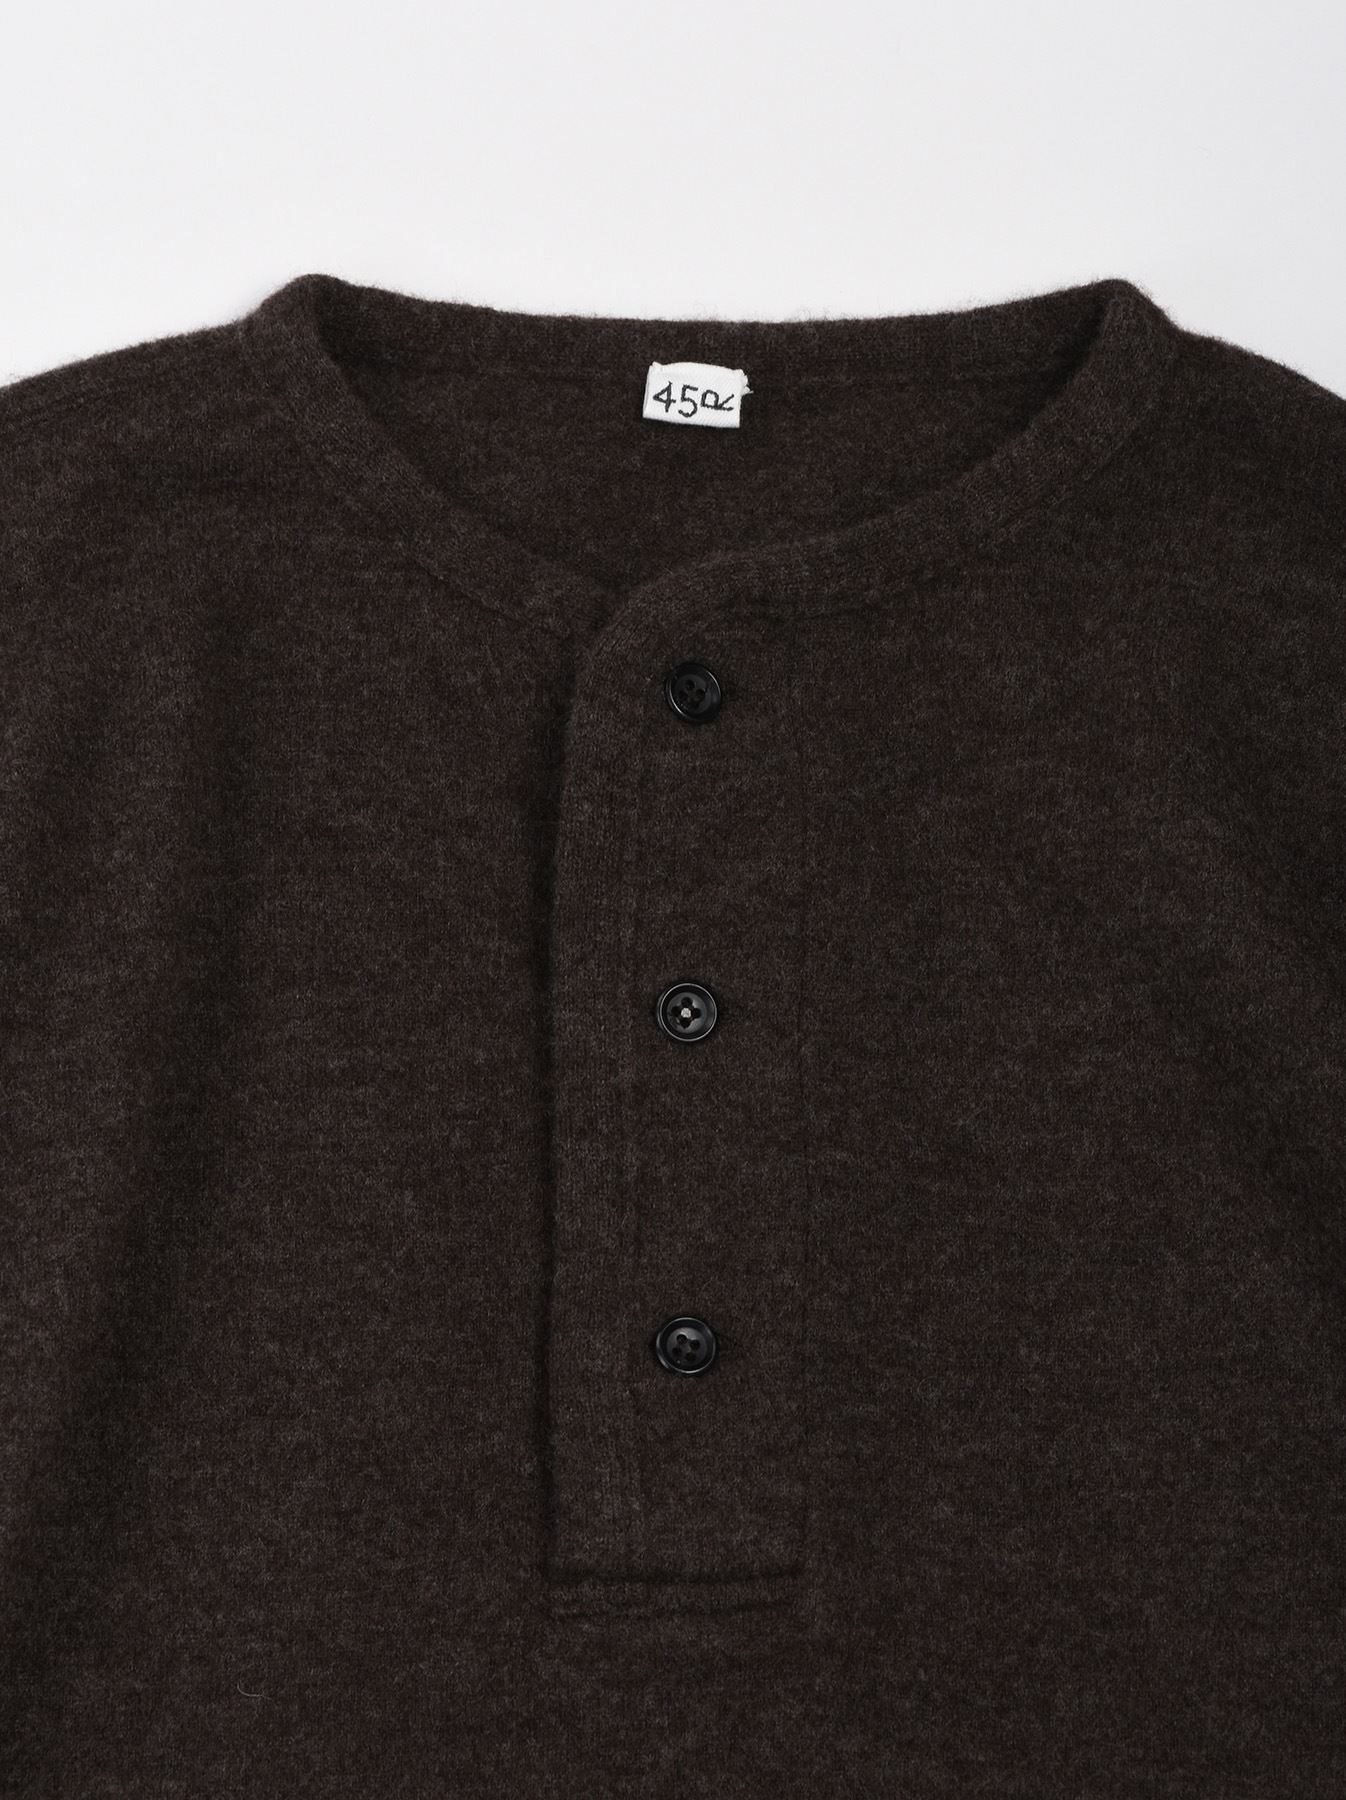 WH Boiled Wool Henley Sweater-9